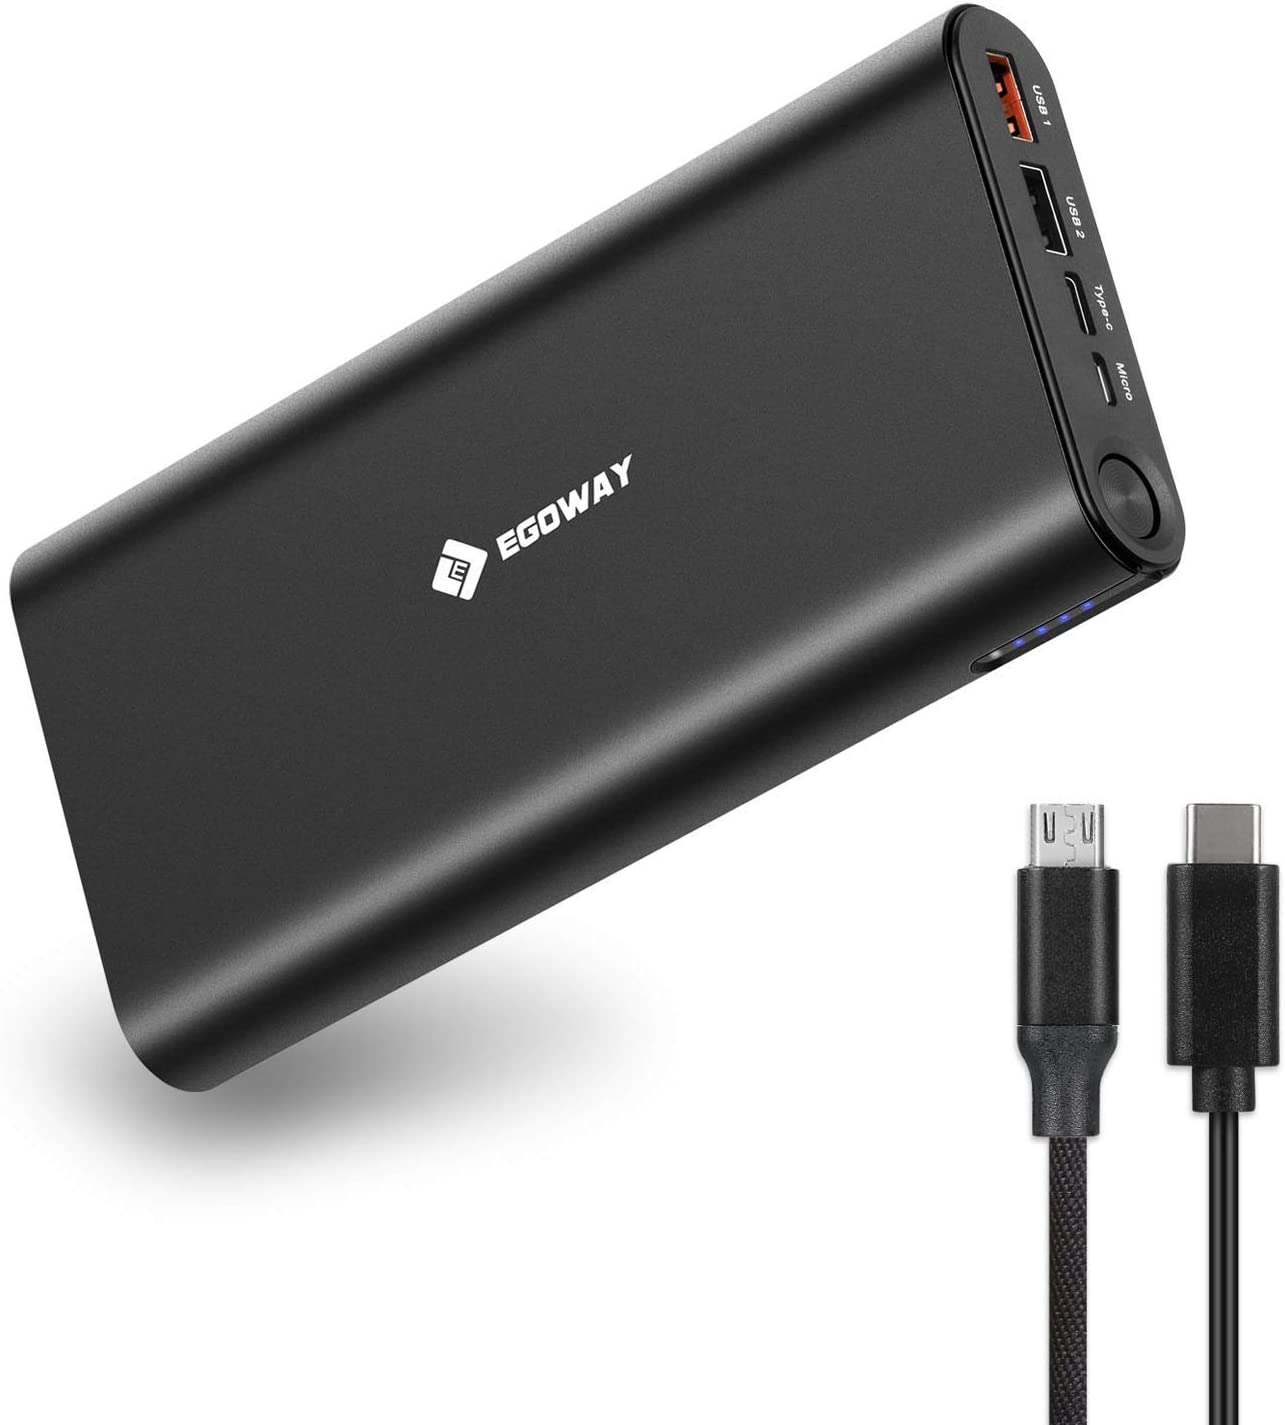 USB C Portable Charger, E EGOWAY 27000mAh Power Bank External Battery for USB C and USB A Smart Phones, Tablets, Laptops and Other Smart Devices